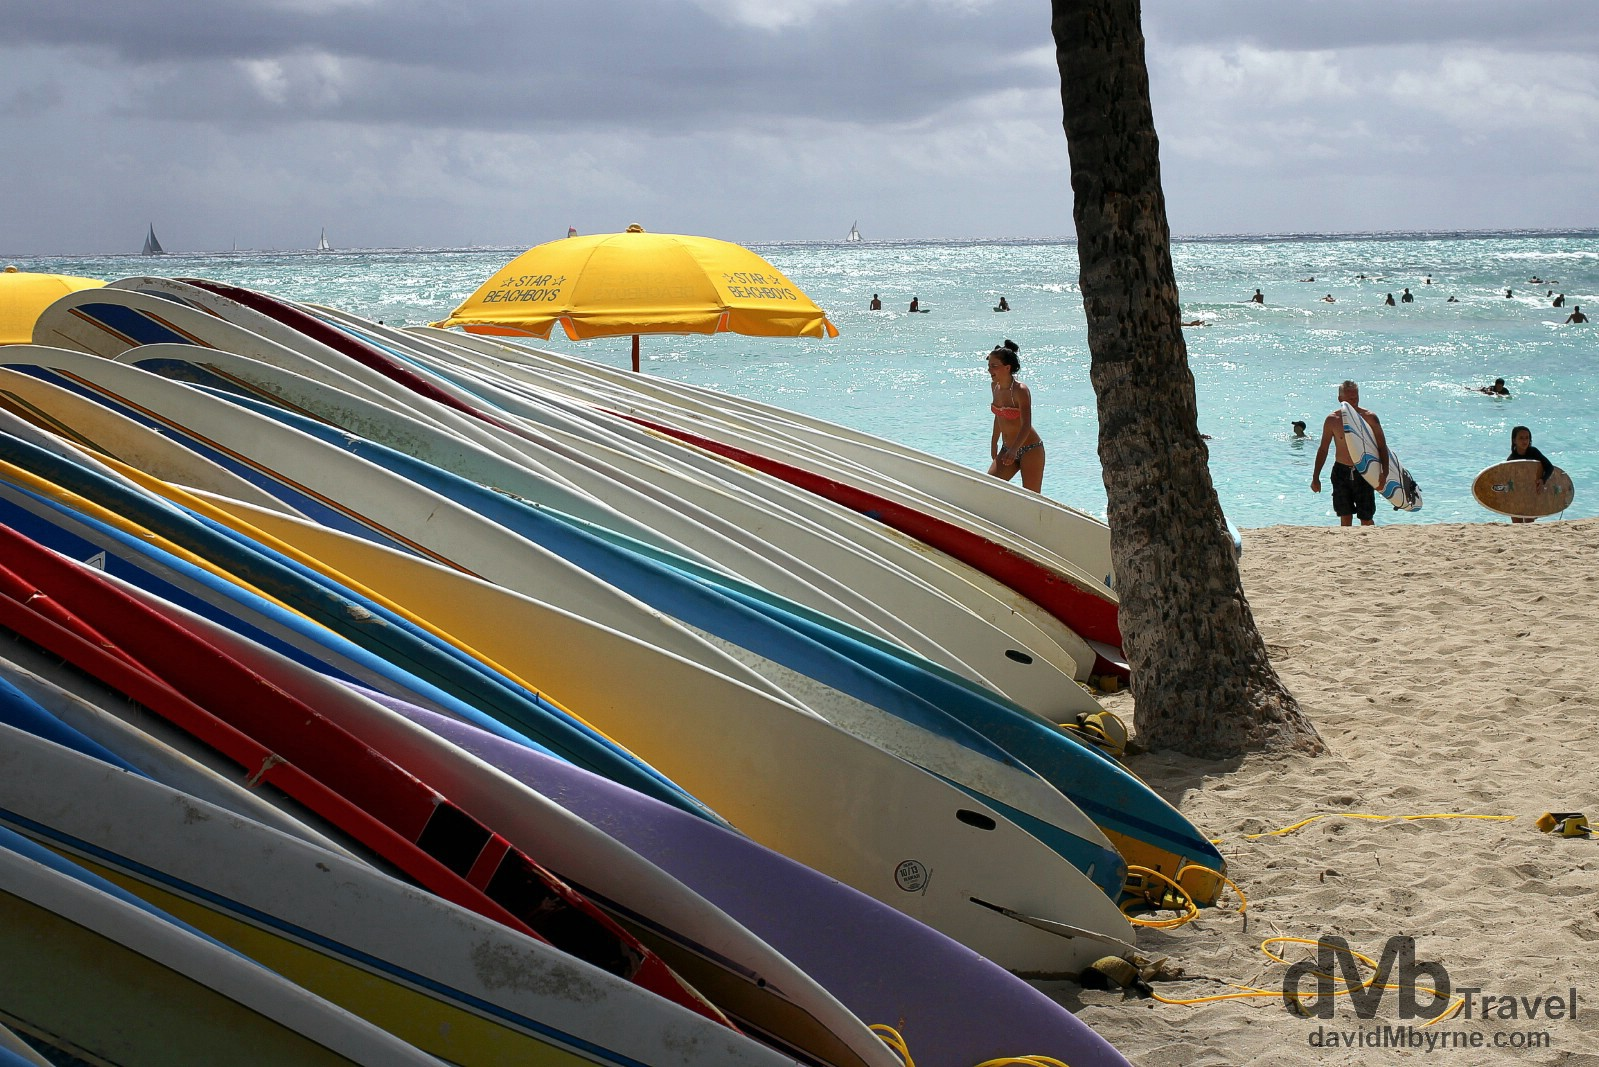 Surfboards lined up on a section of Waikiki Beach, Oahu, Hawaii, USA. March 9th 2013.